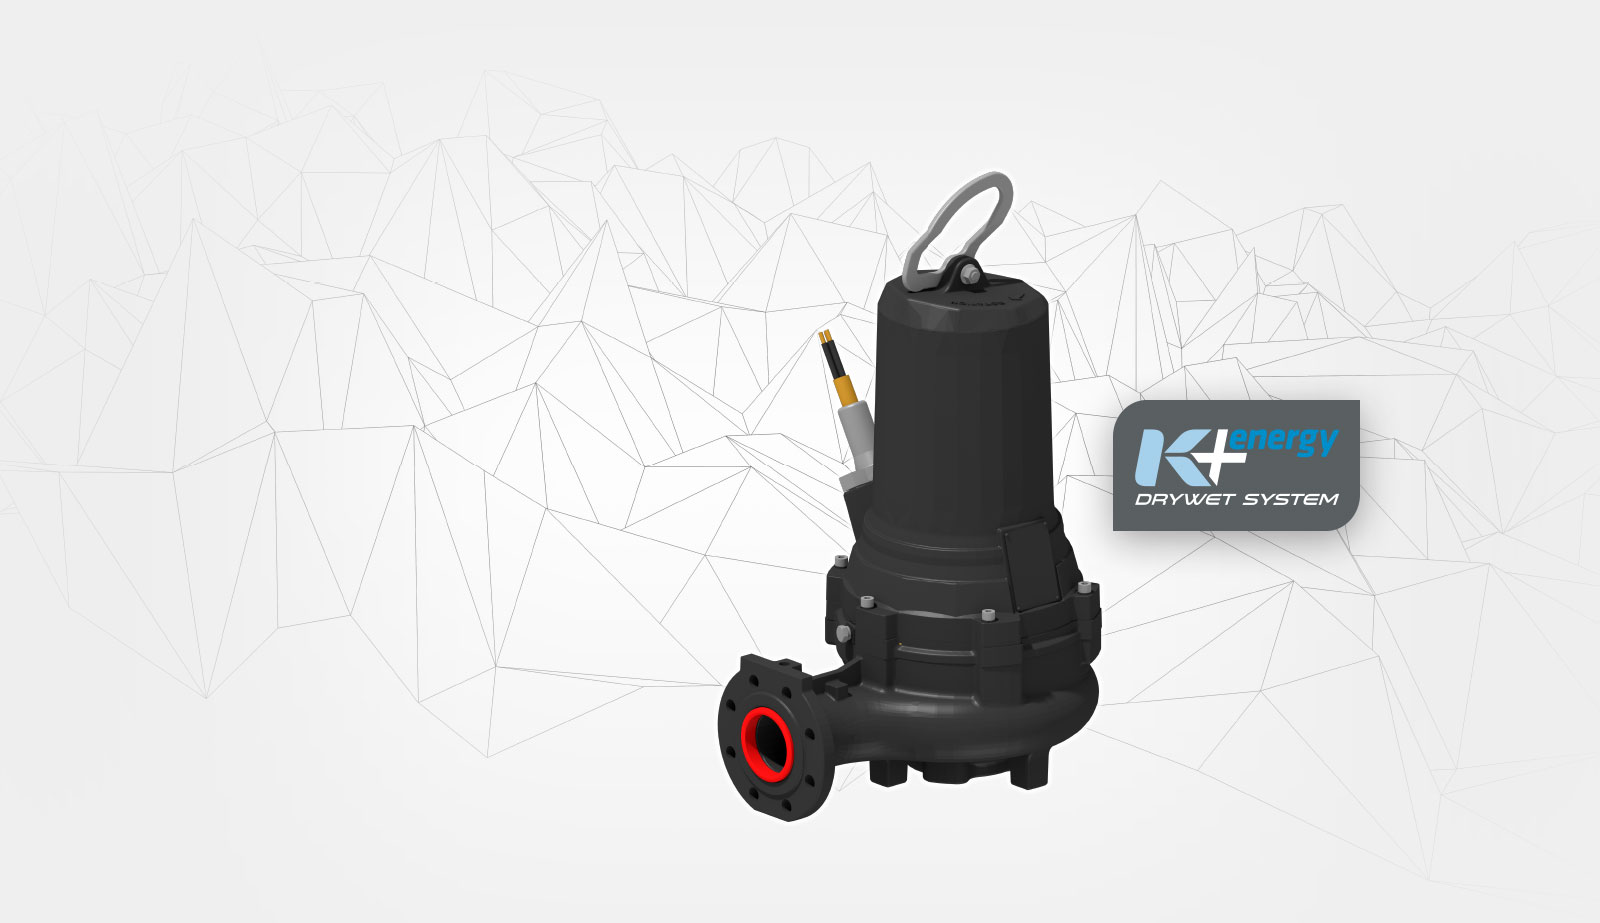 K + energy: welcome in the new era of sewage pump